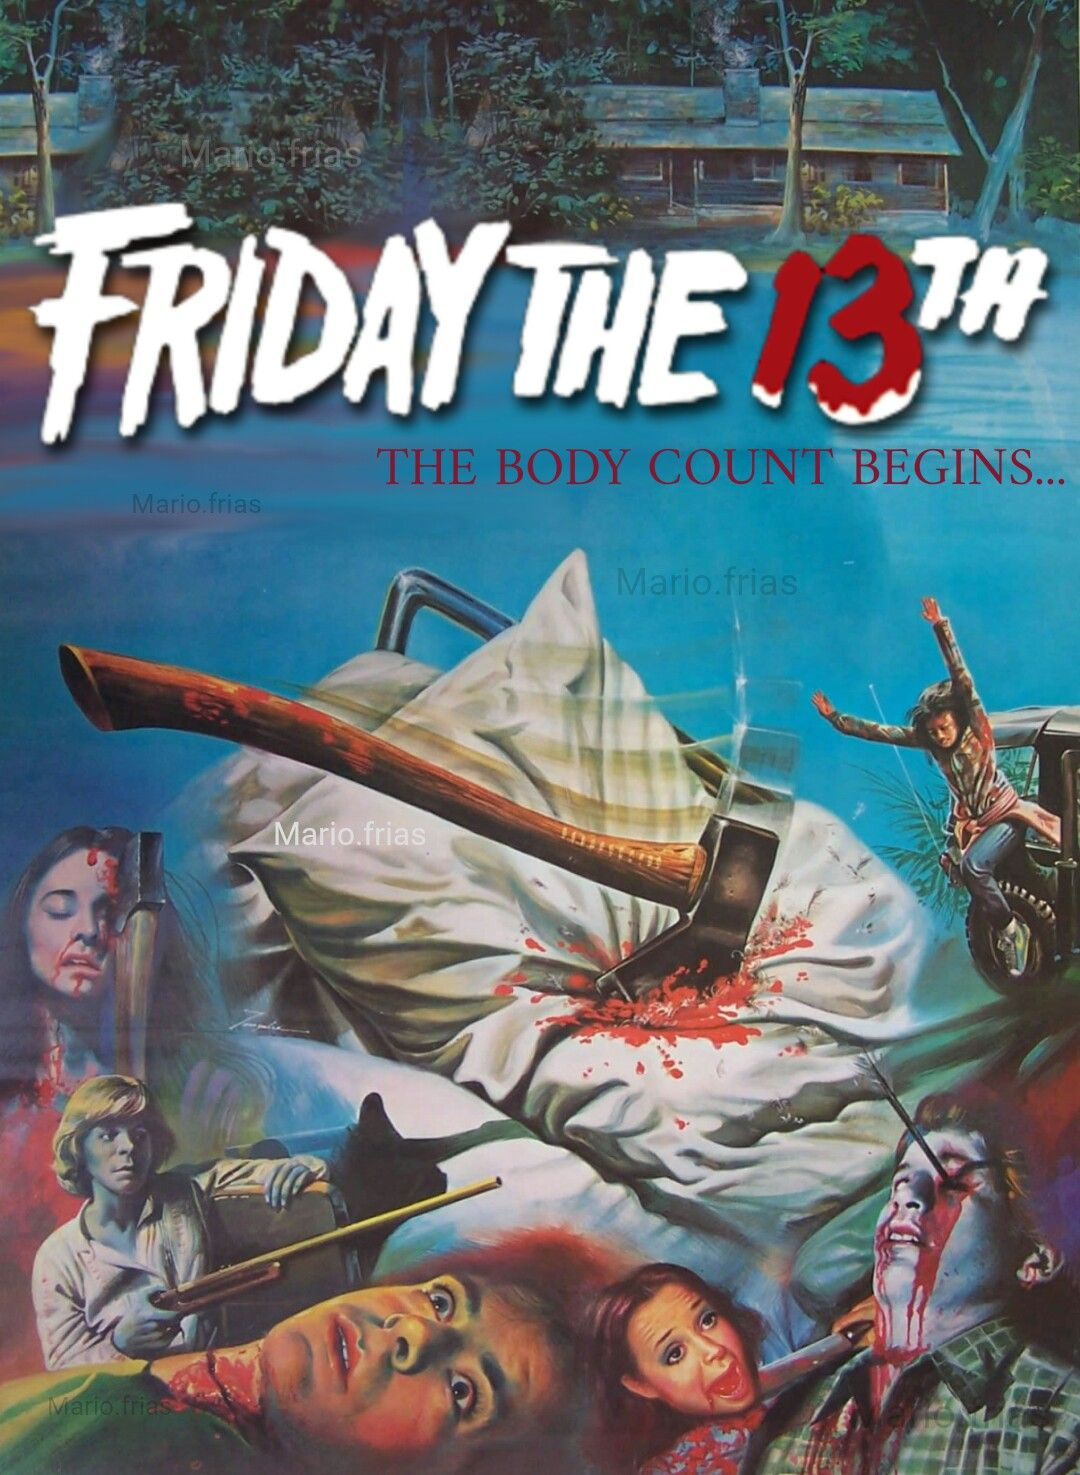 Friday The 13th Horror Movie Slasher Poster Re Edit Poster With Images Classic Horror Movies Horror Movie Posters Horror Movies